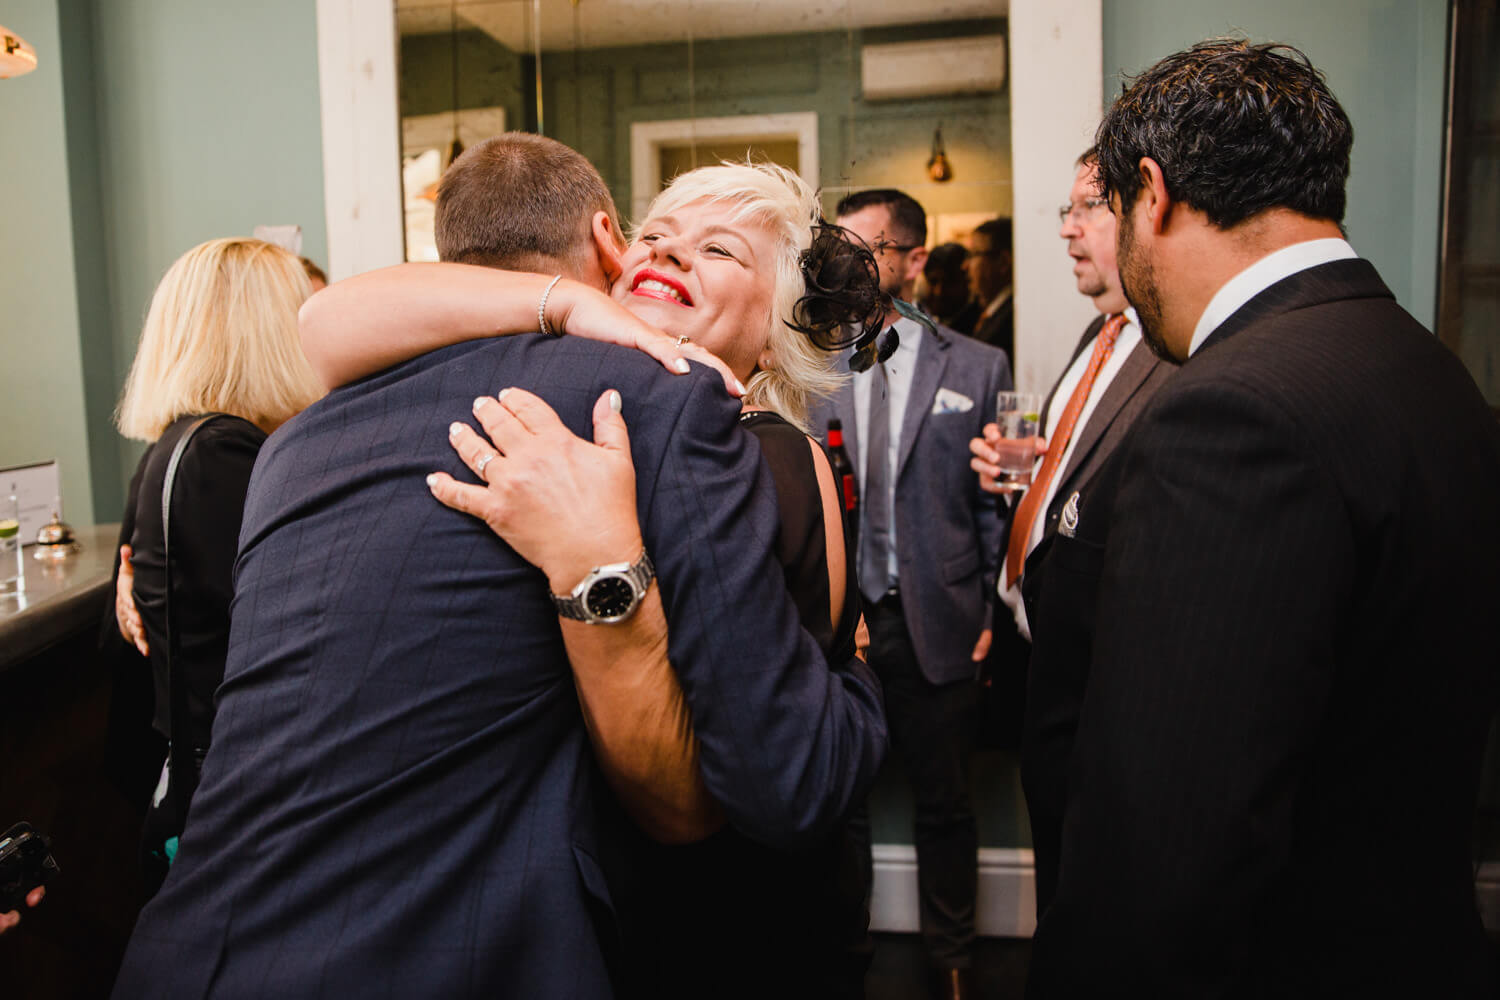 wedding guest hugs groom in lobby before ceremony